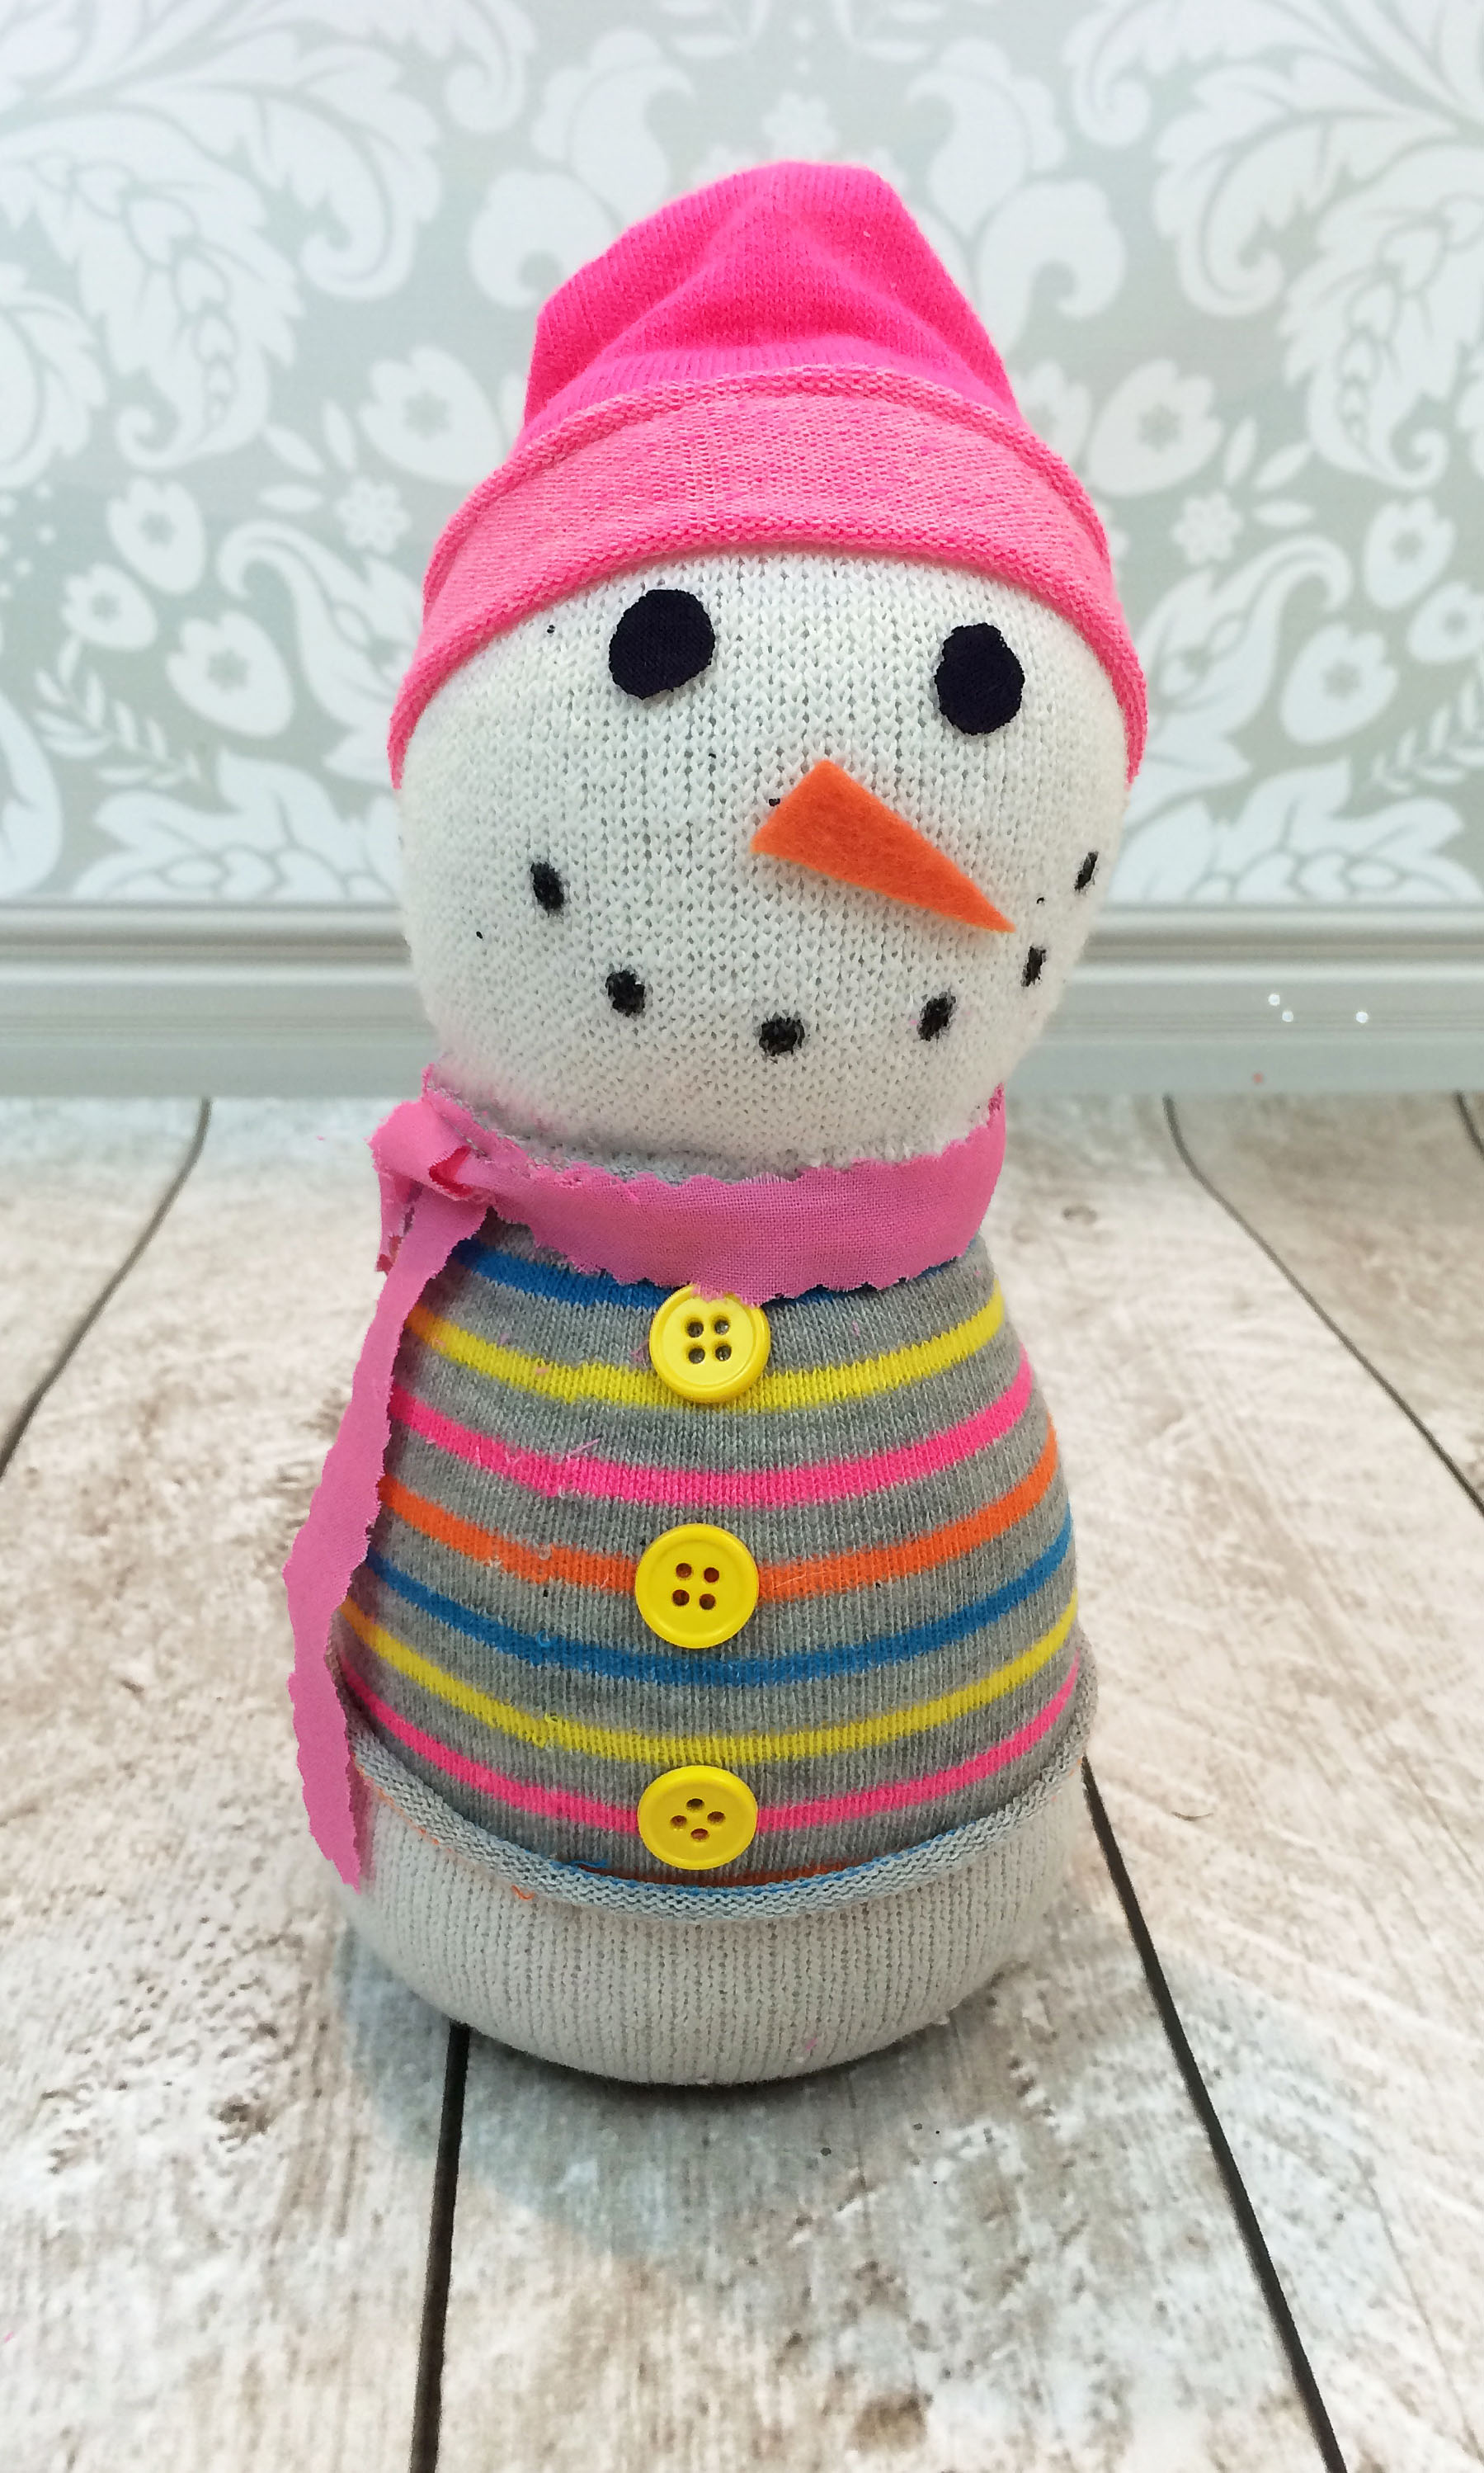 How to make a sock snowman the stitching scientist